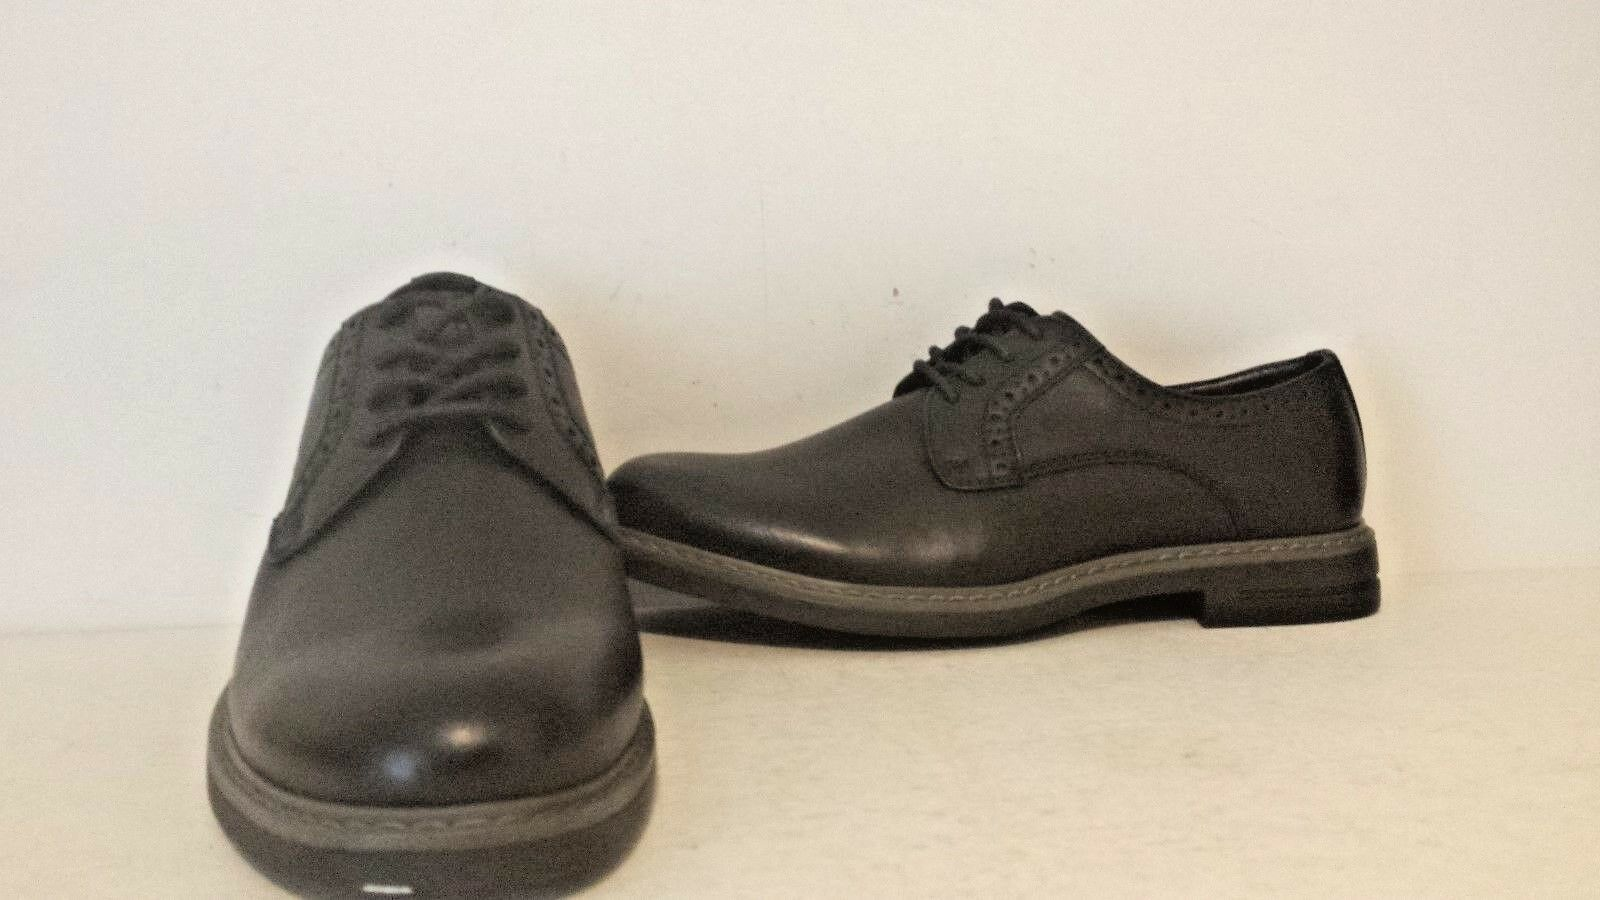 Izod Chad Plain Toe Oxford  Schuhes schwarz Bridge Größe 10 M    Oxford  256478